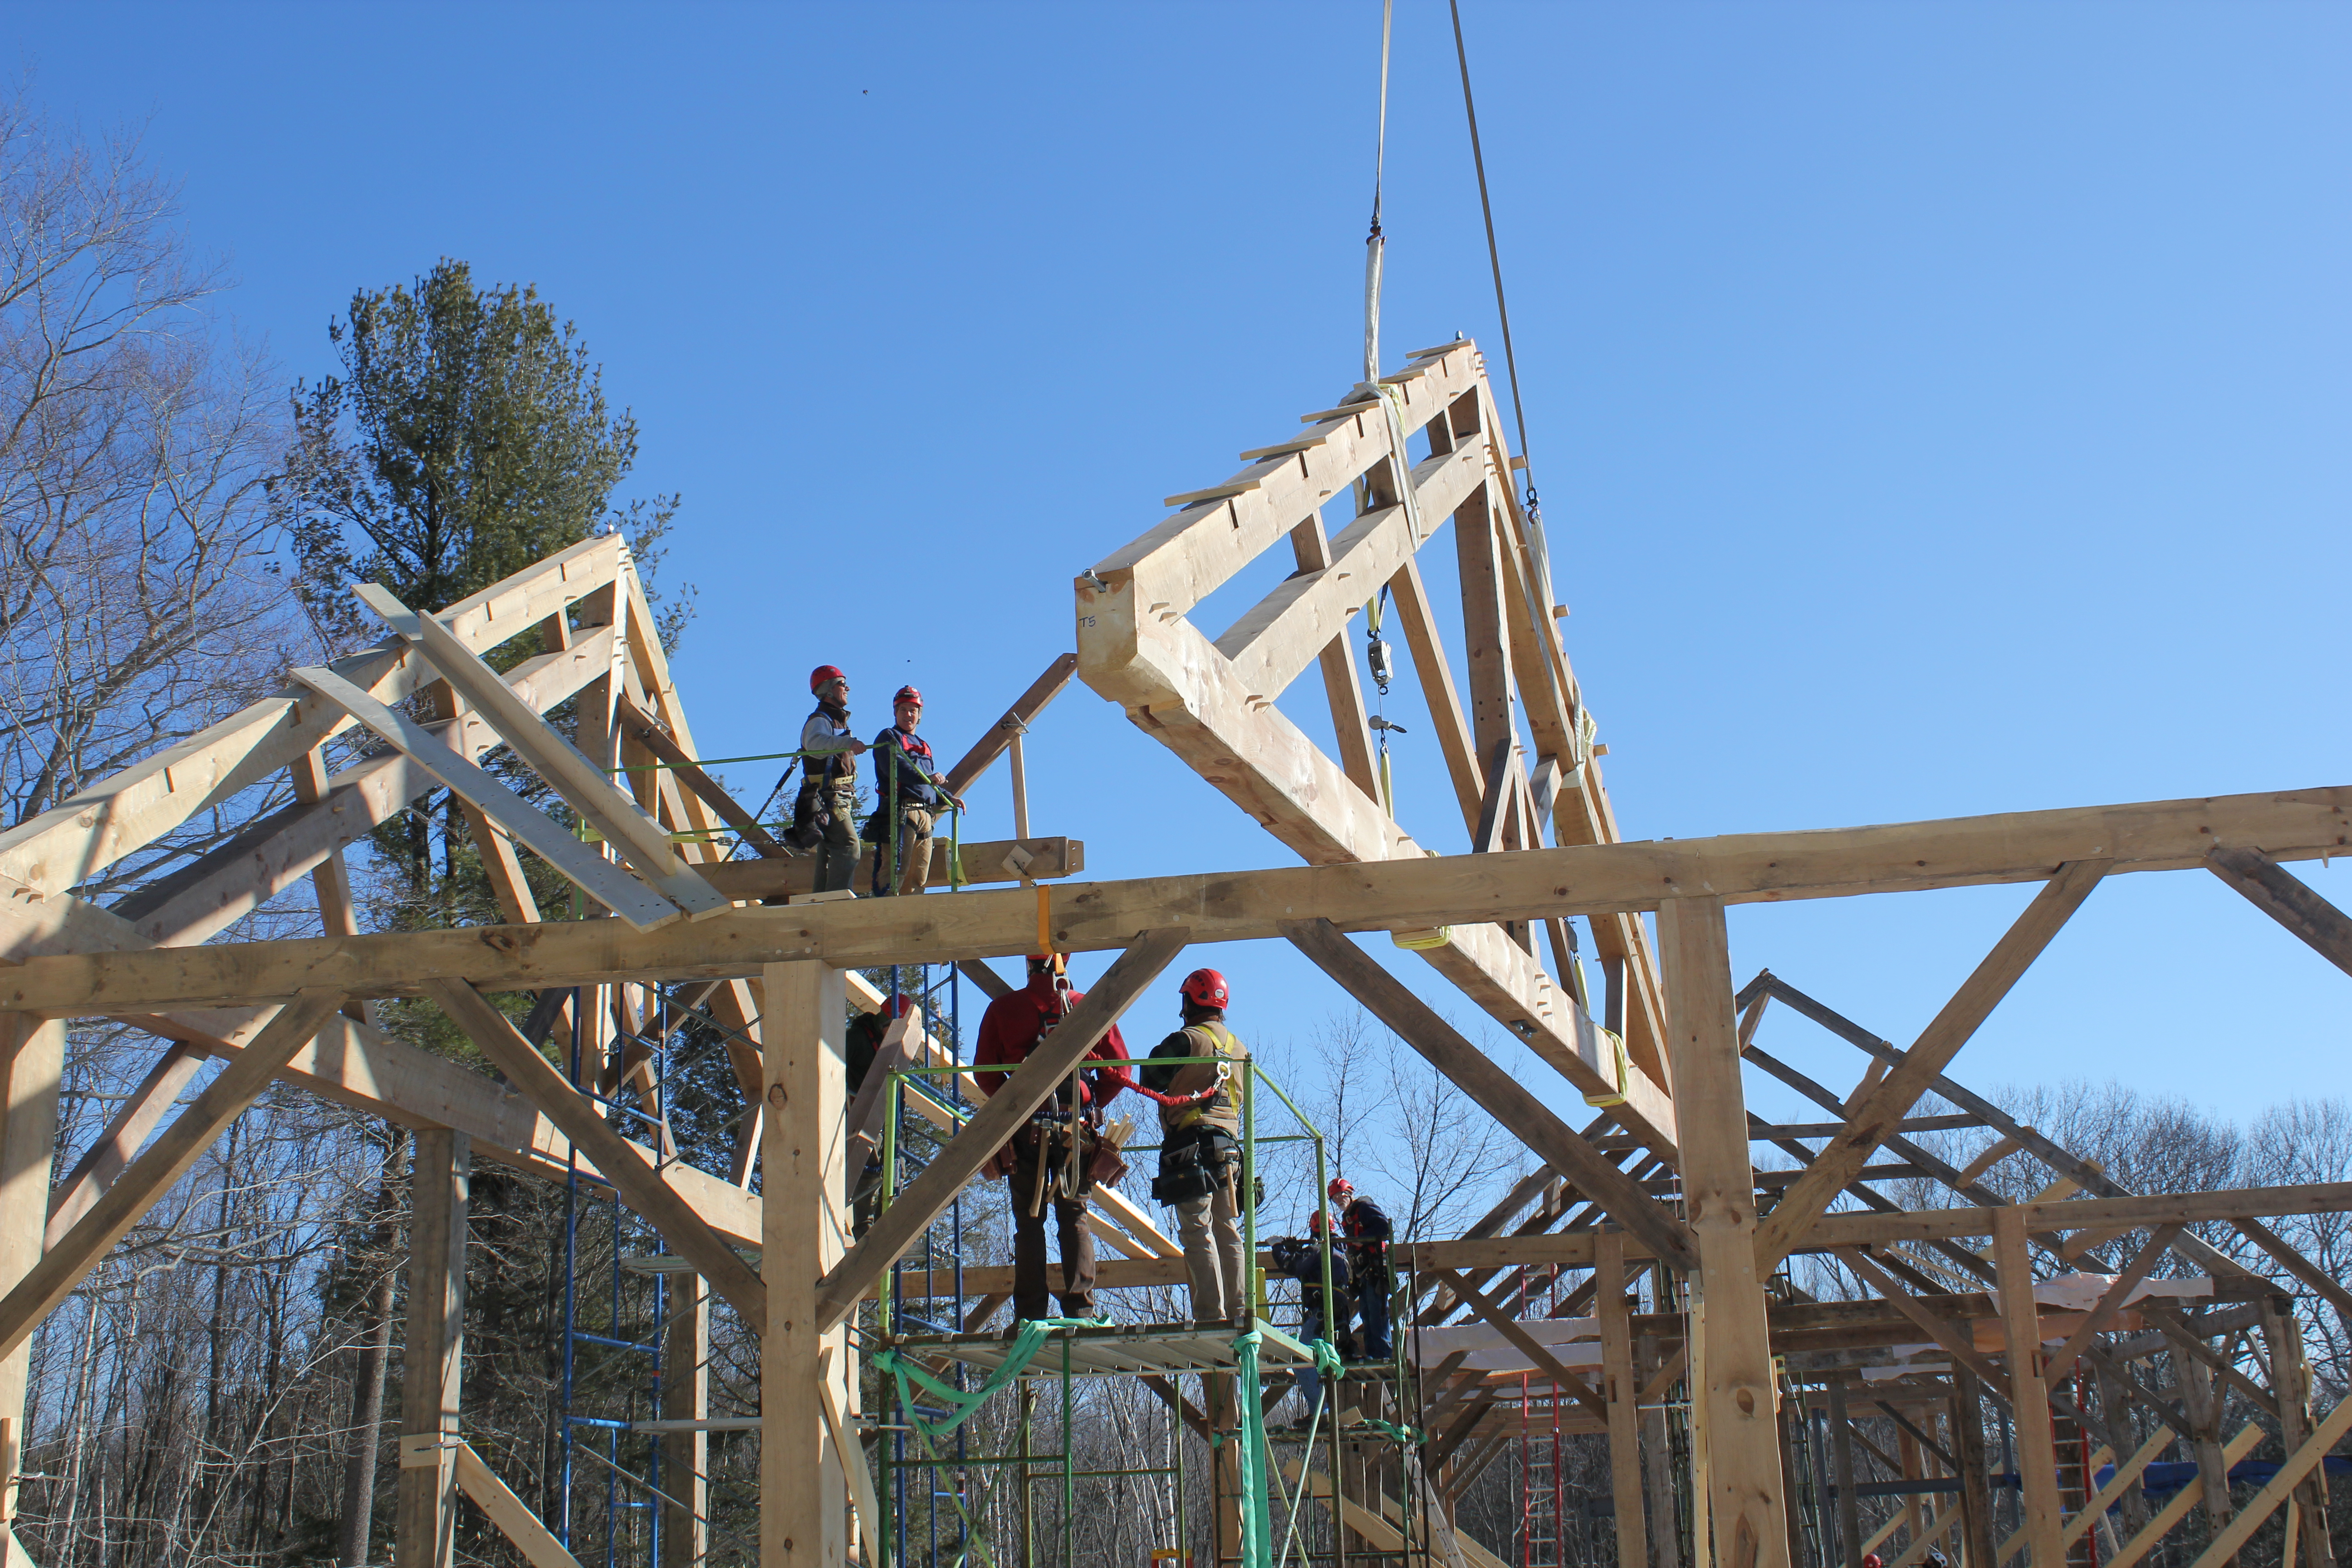 Installing meetinghouse truss on crane day. One of many (cranes days, and trusses)